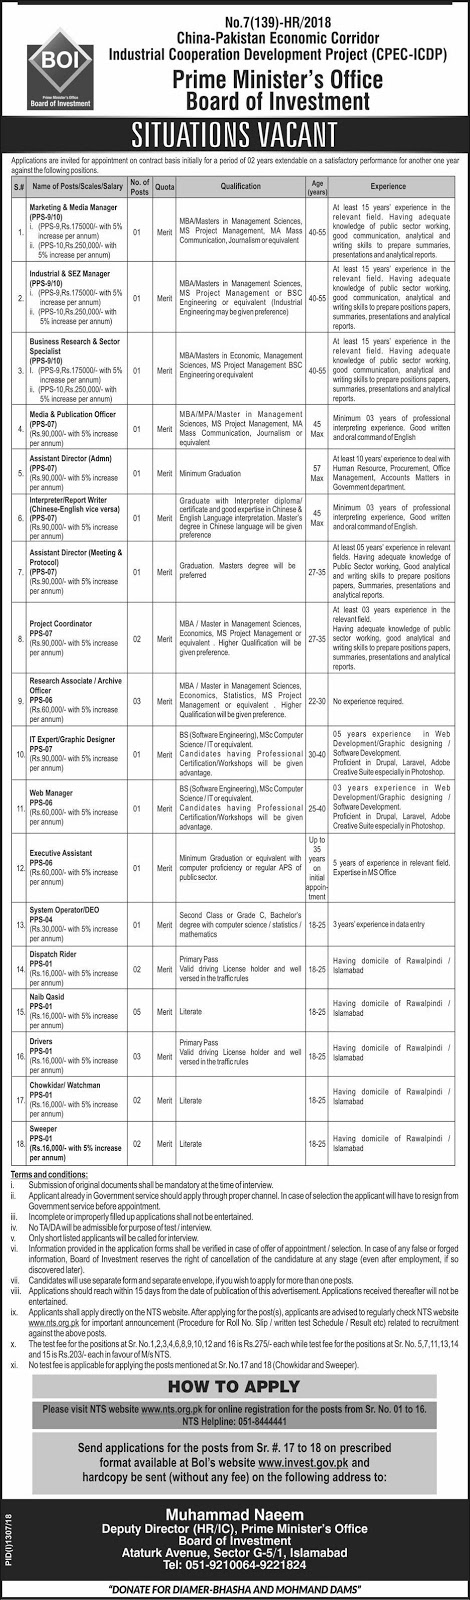 Latest Jobs in CPEC 2018 Online Registration and Application form Download.